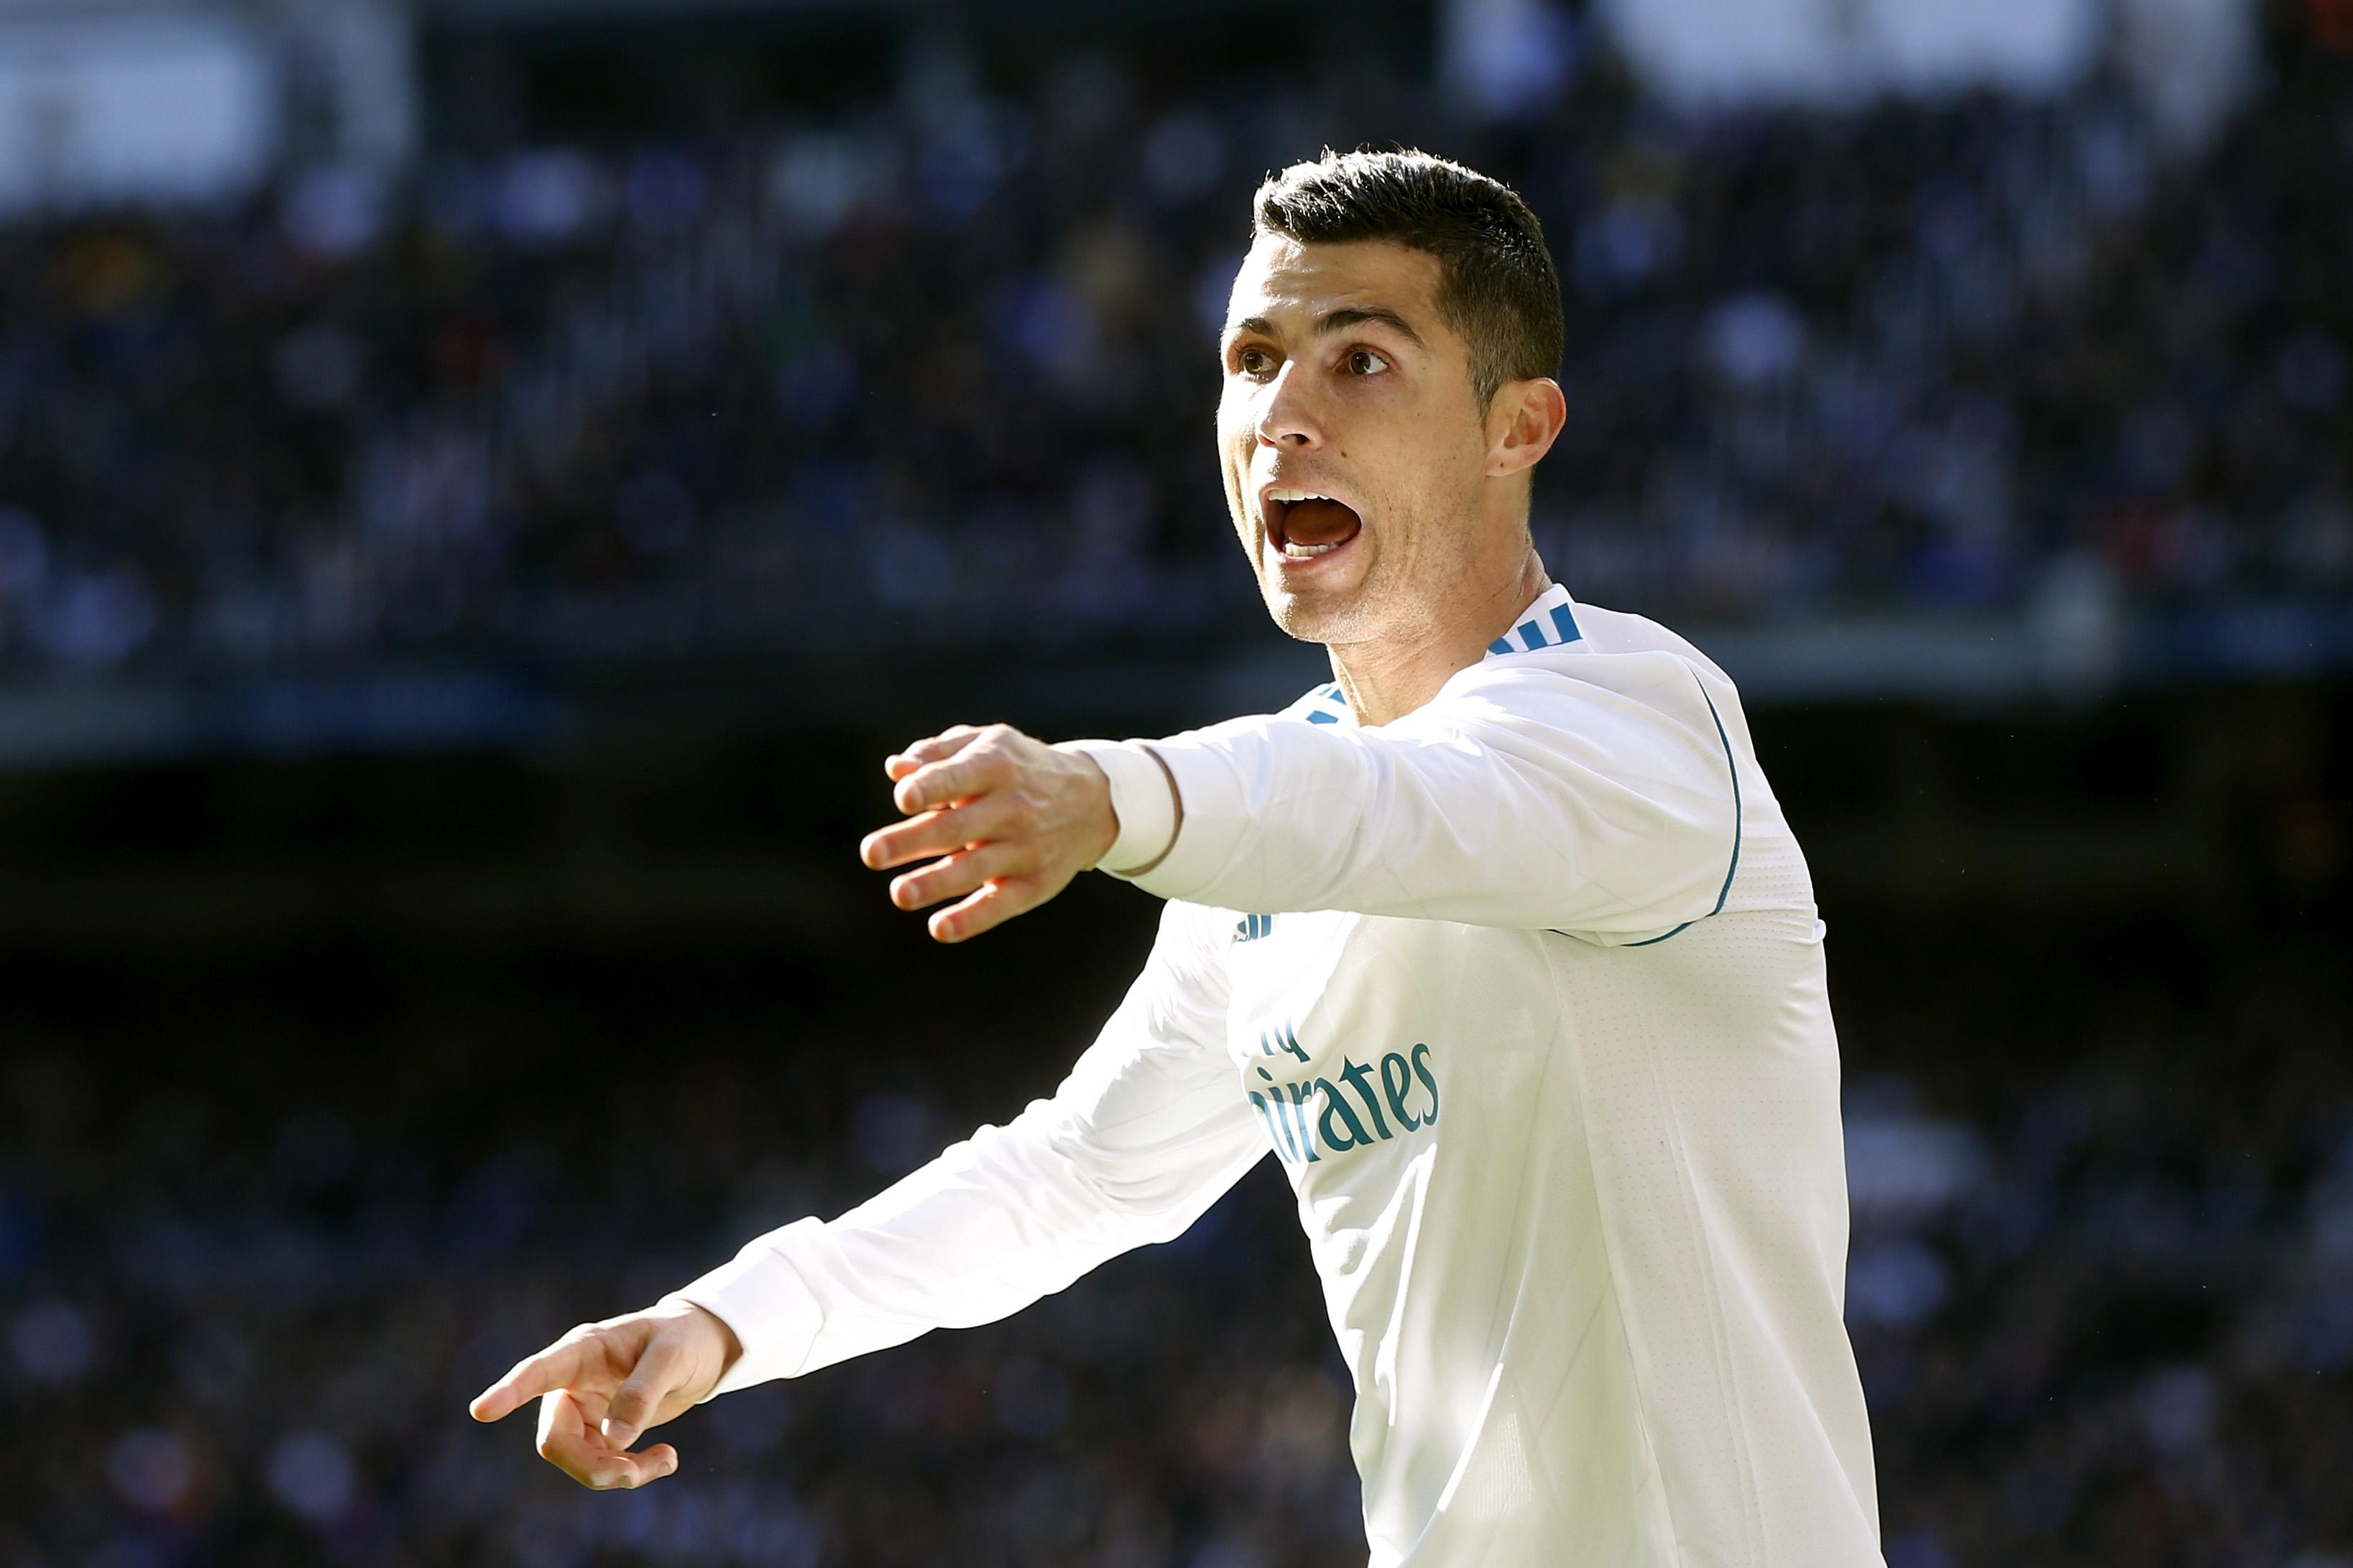 CR7 has endured a difficult spell this season